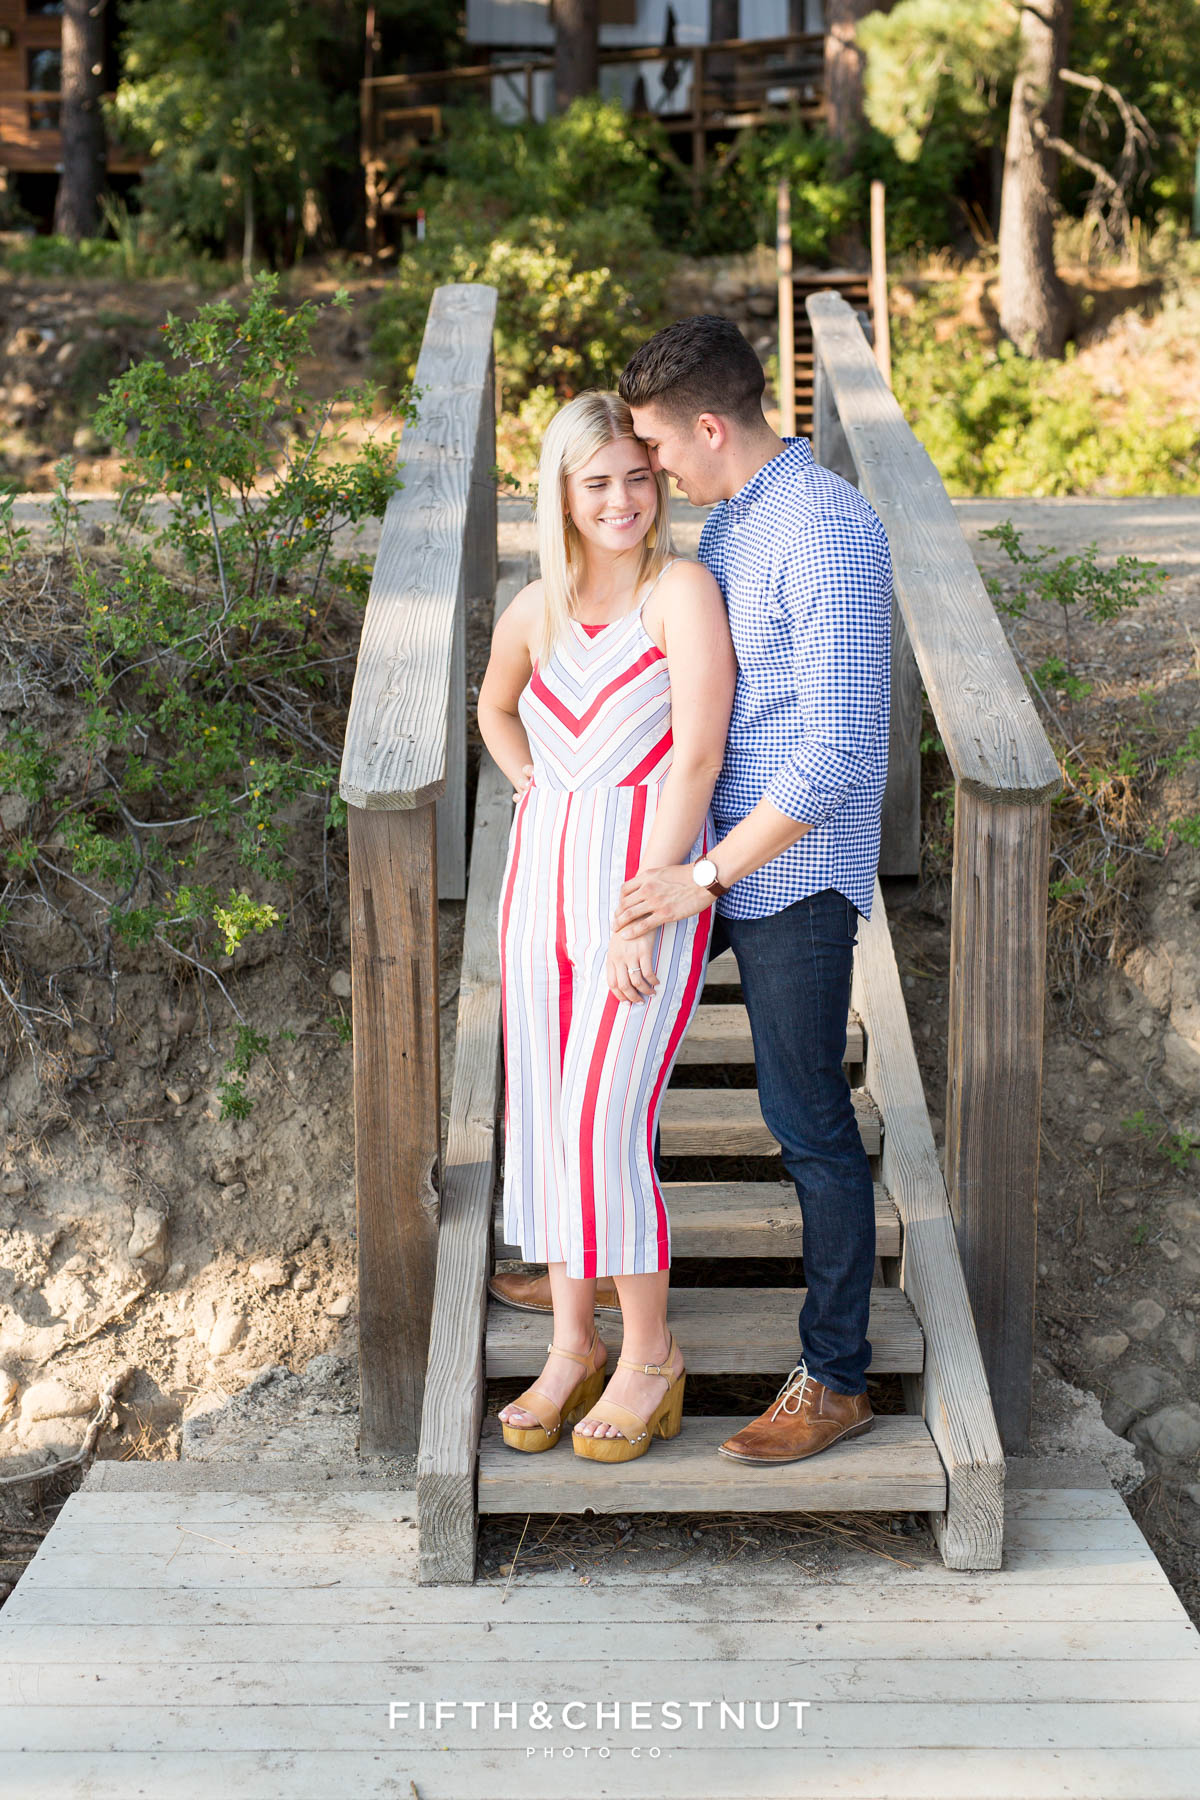 Groom-to-be whispers in his fiance's ear on steps of a dock after their romantic Donner Lake Proposal